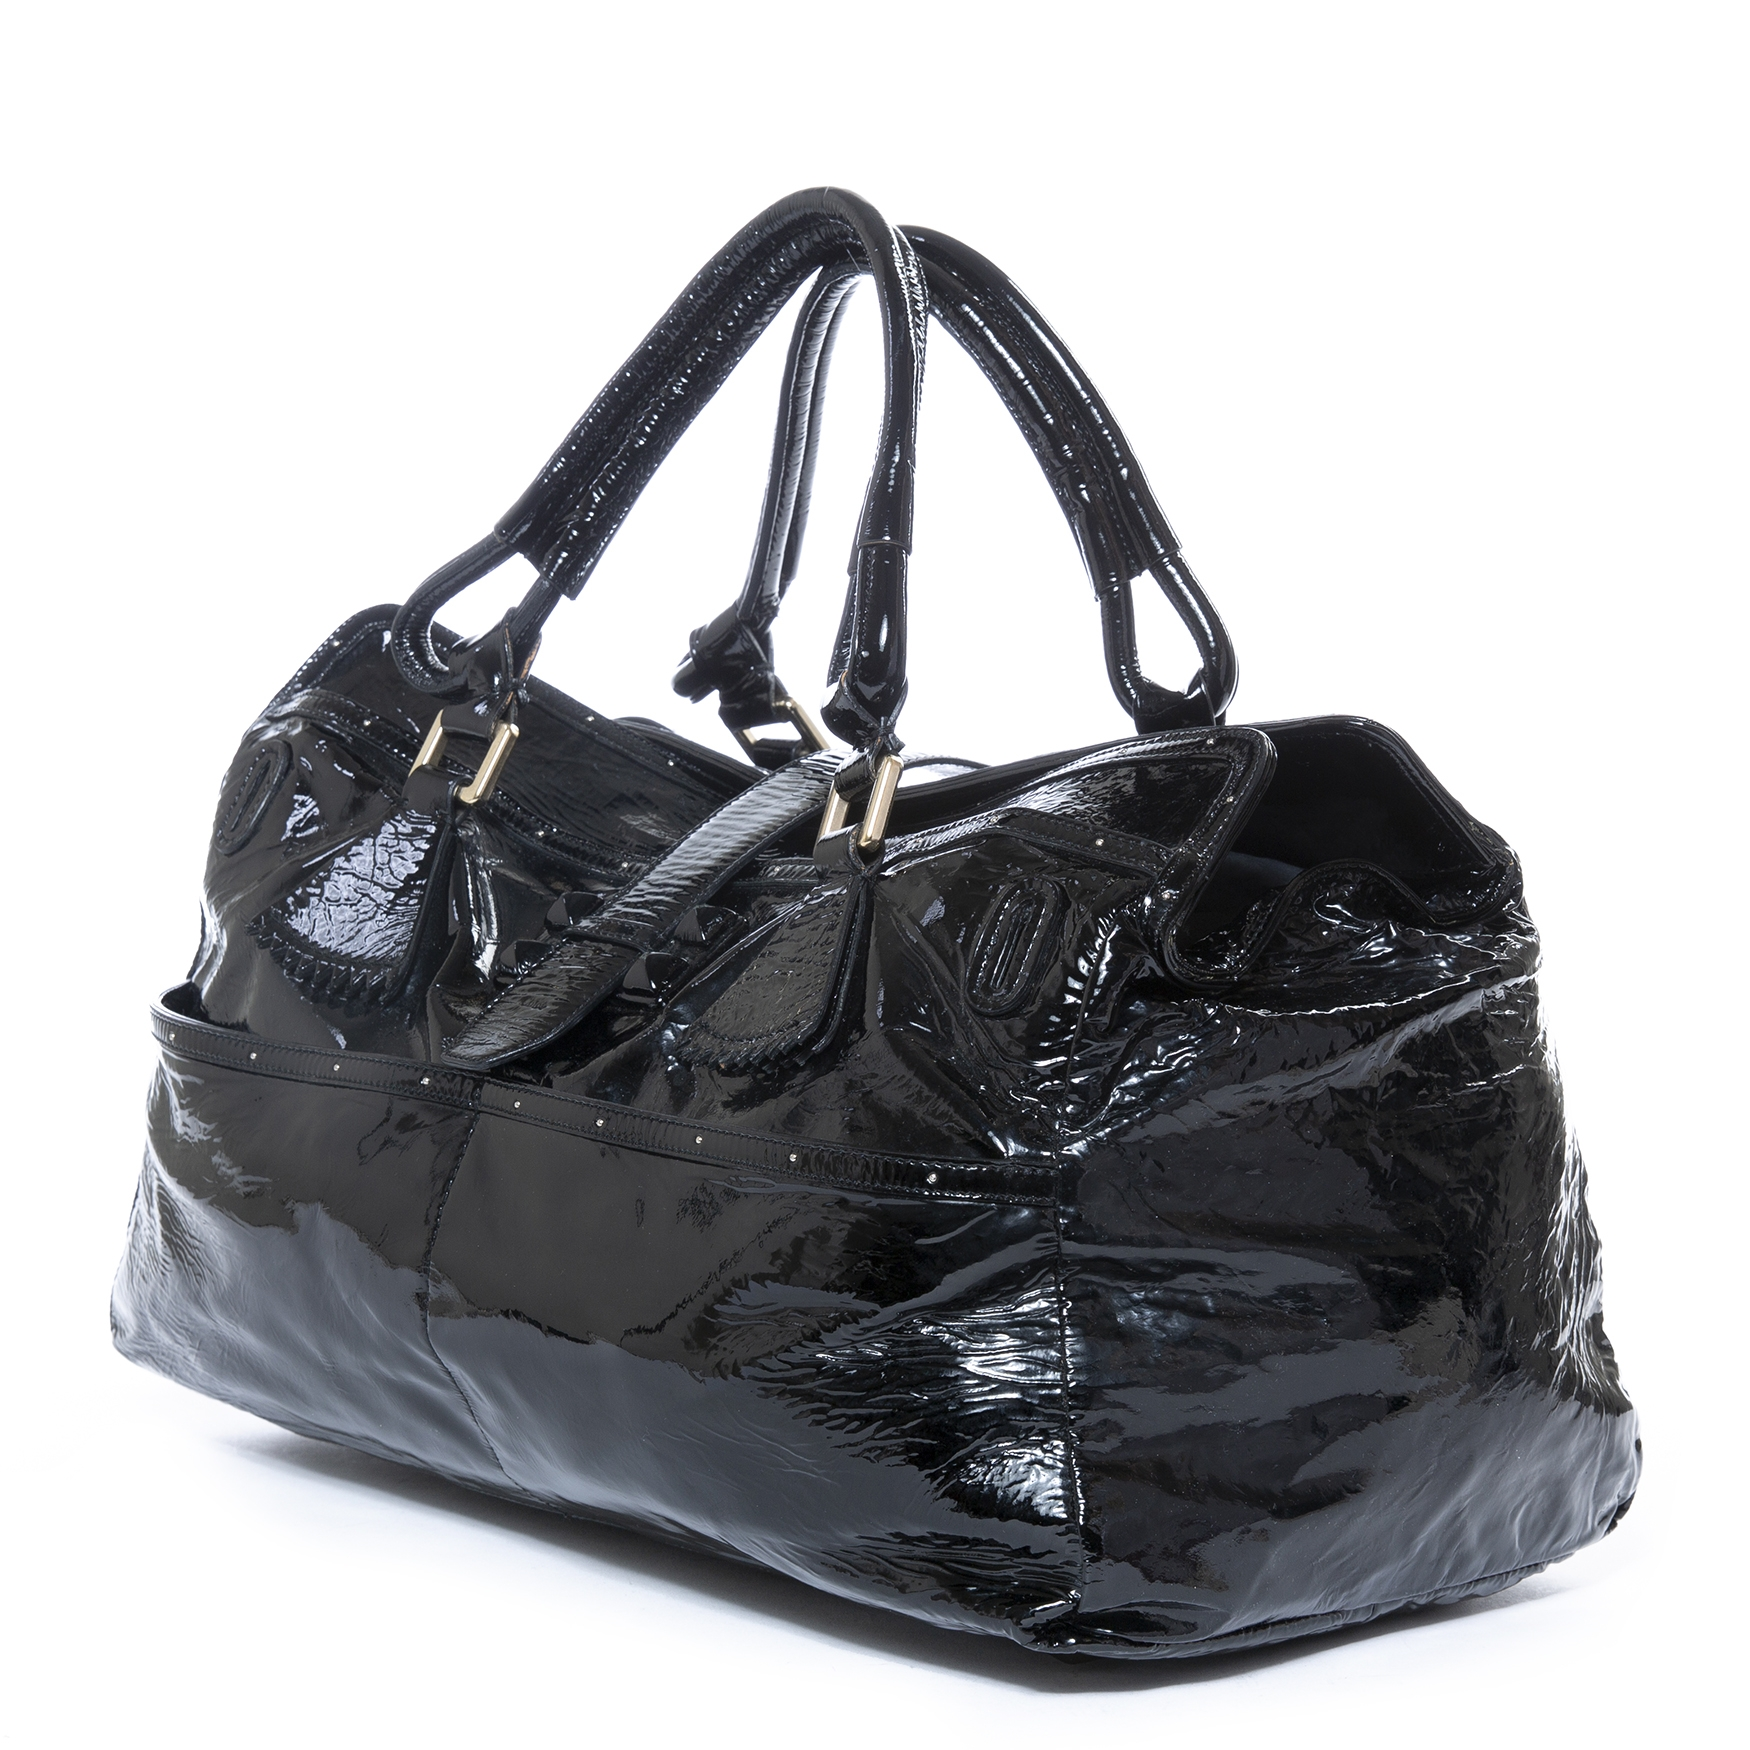 buy Chloé Black Patent Shopper and pay online at labellov.com